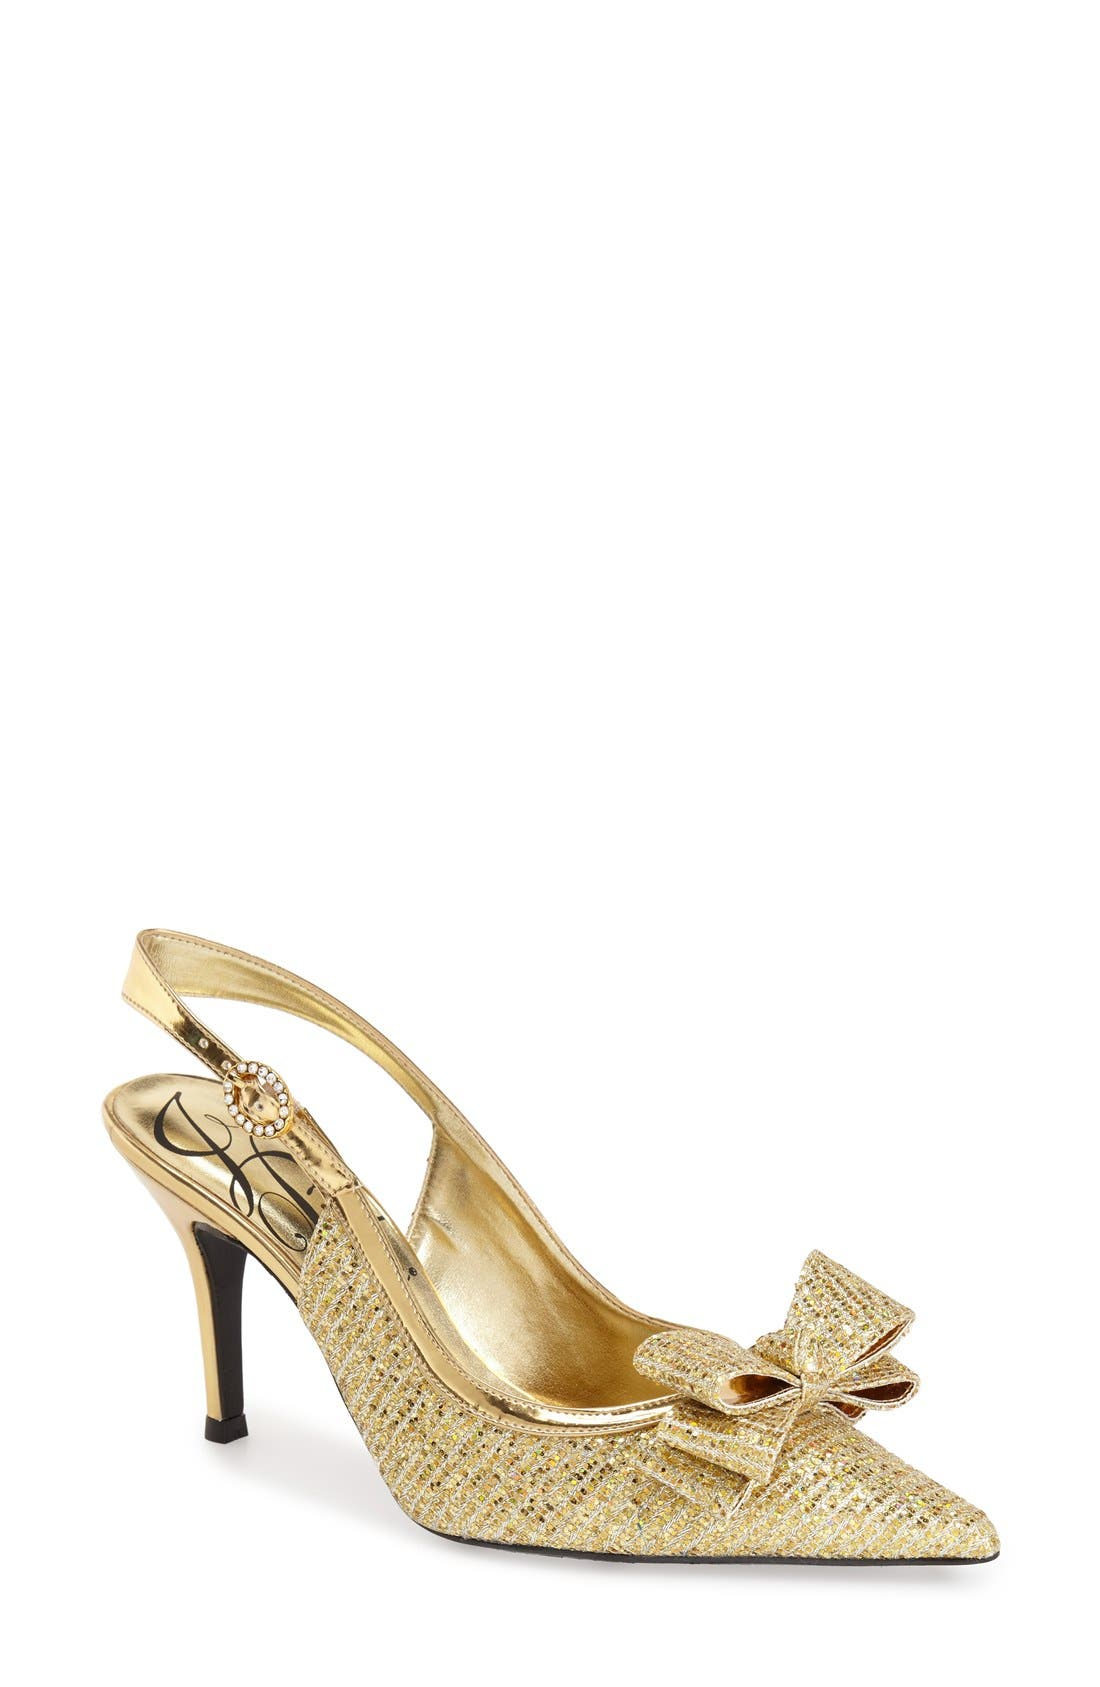 'Charise' Slingback Pump,                         Main,                         color, GOLD